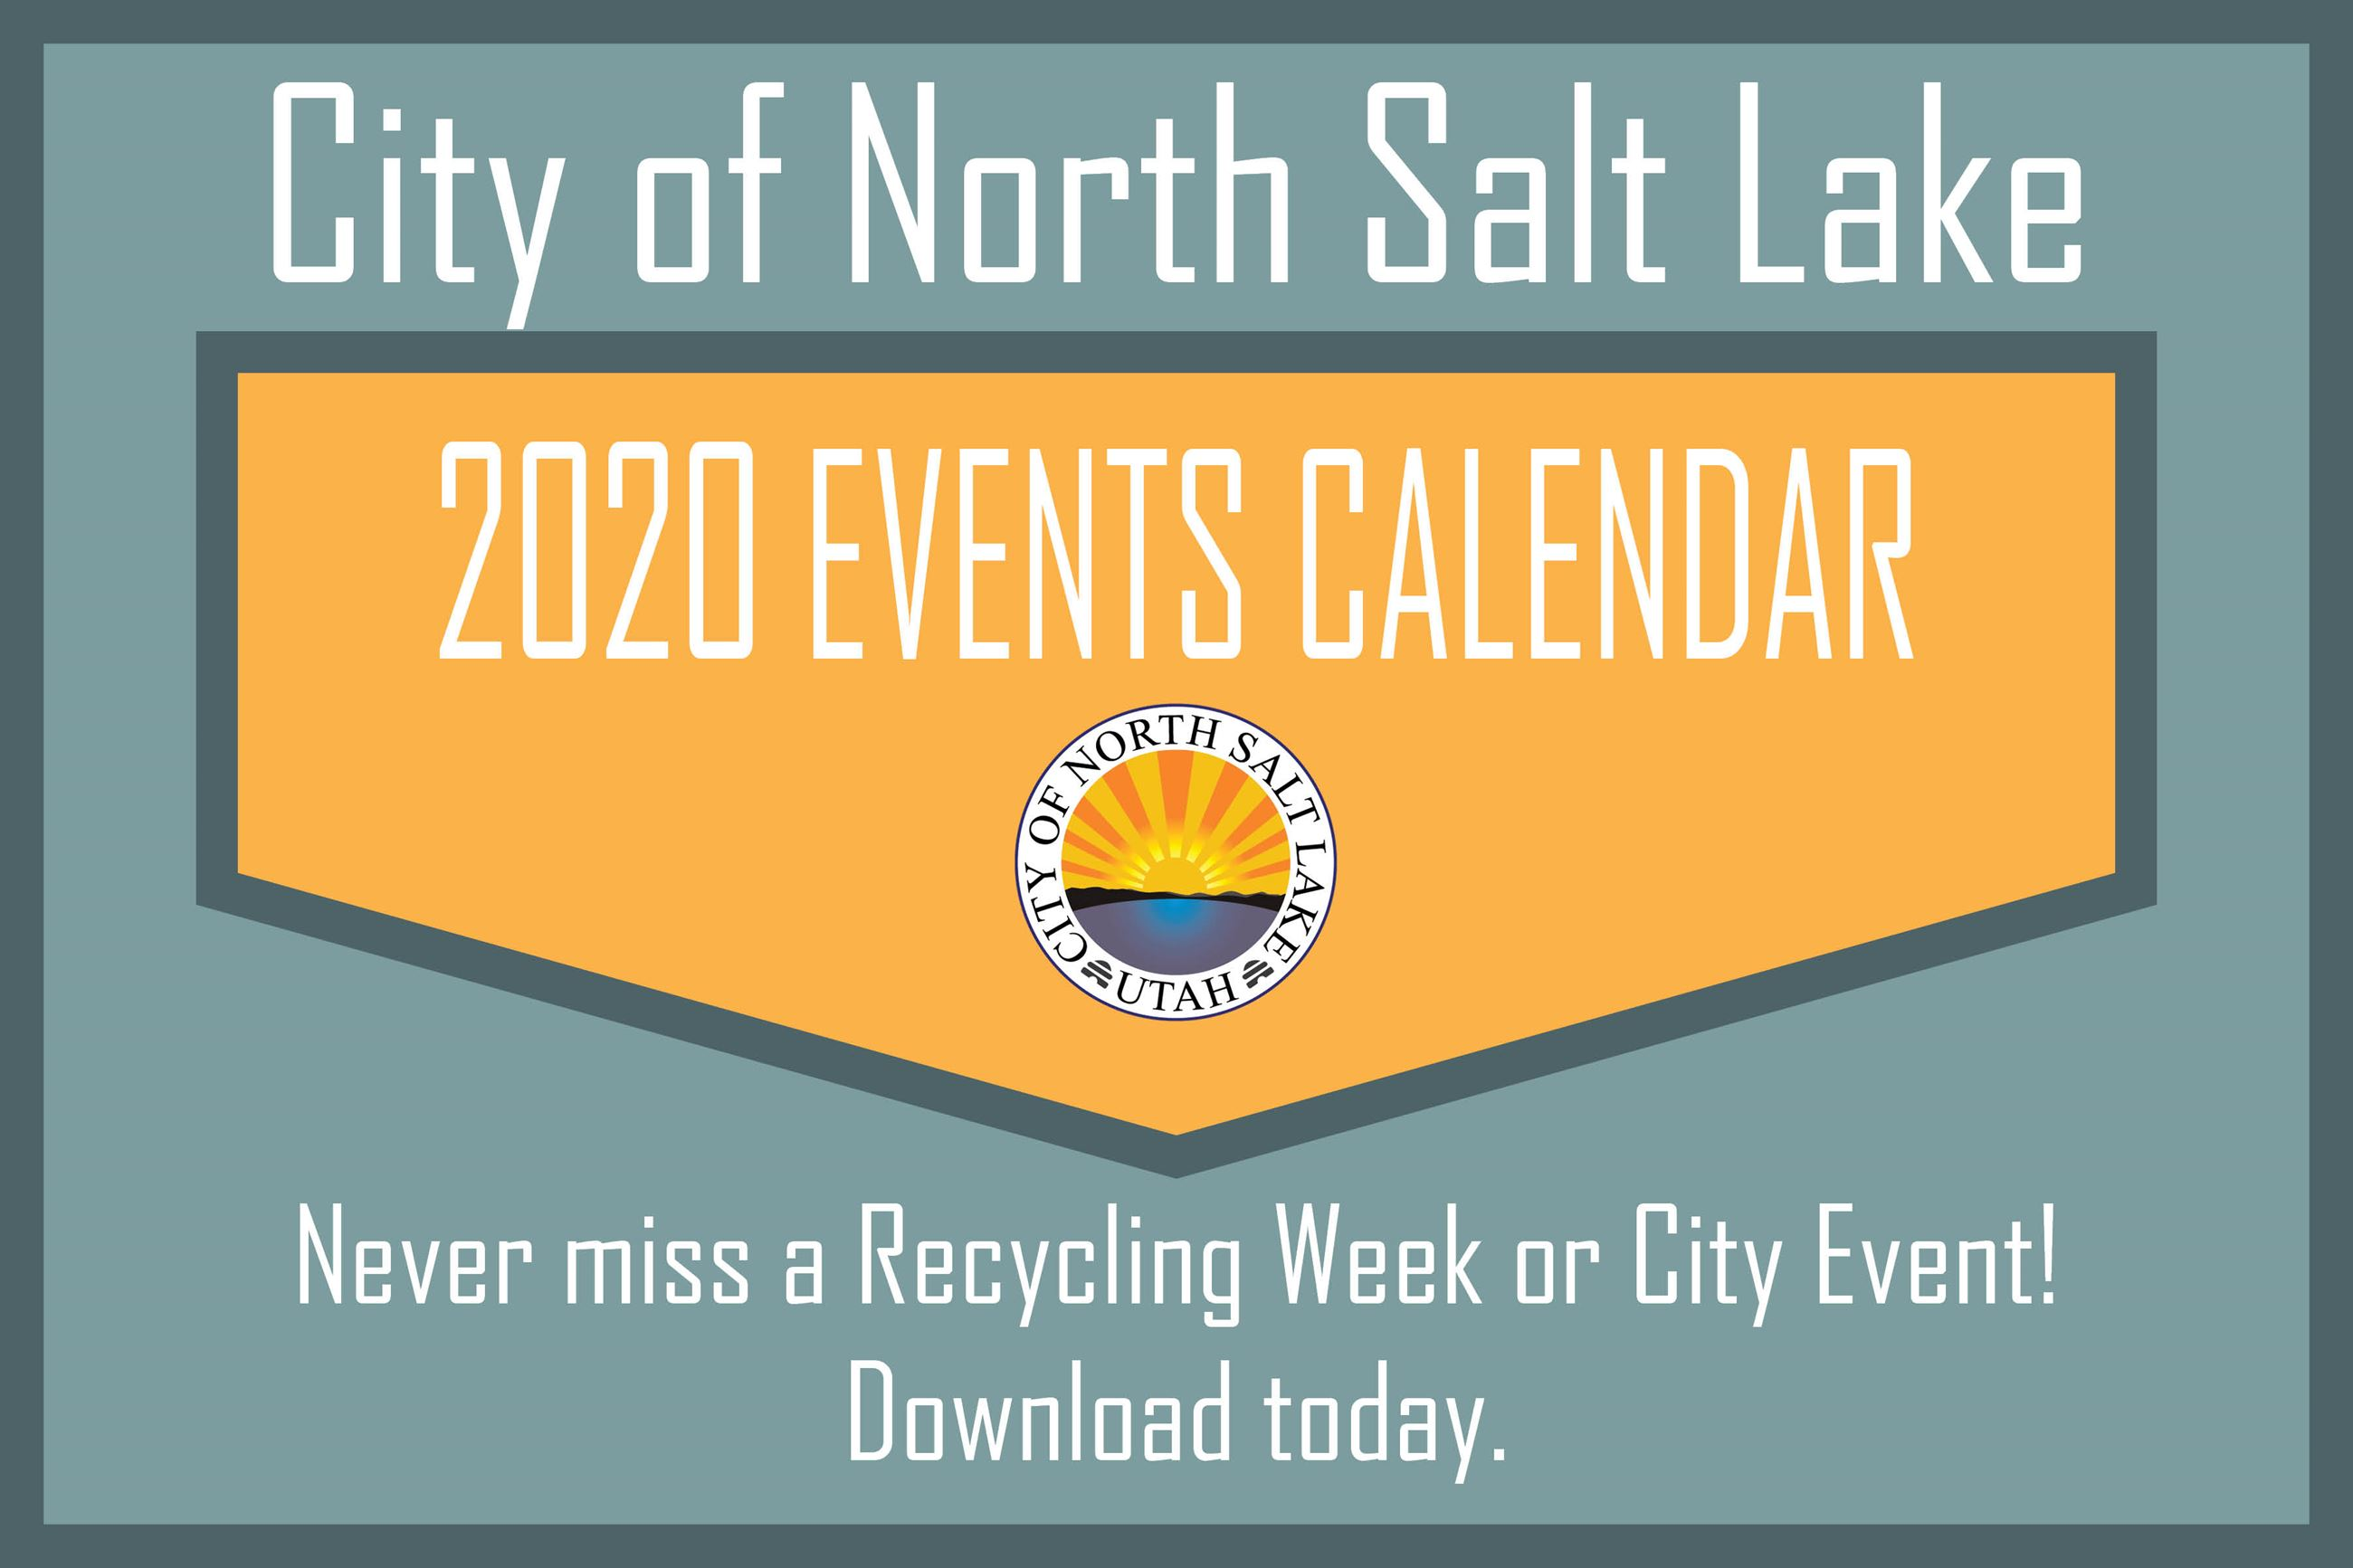 2020 Event Calendar News Flash Graphic